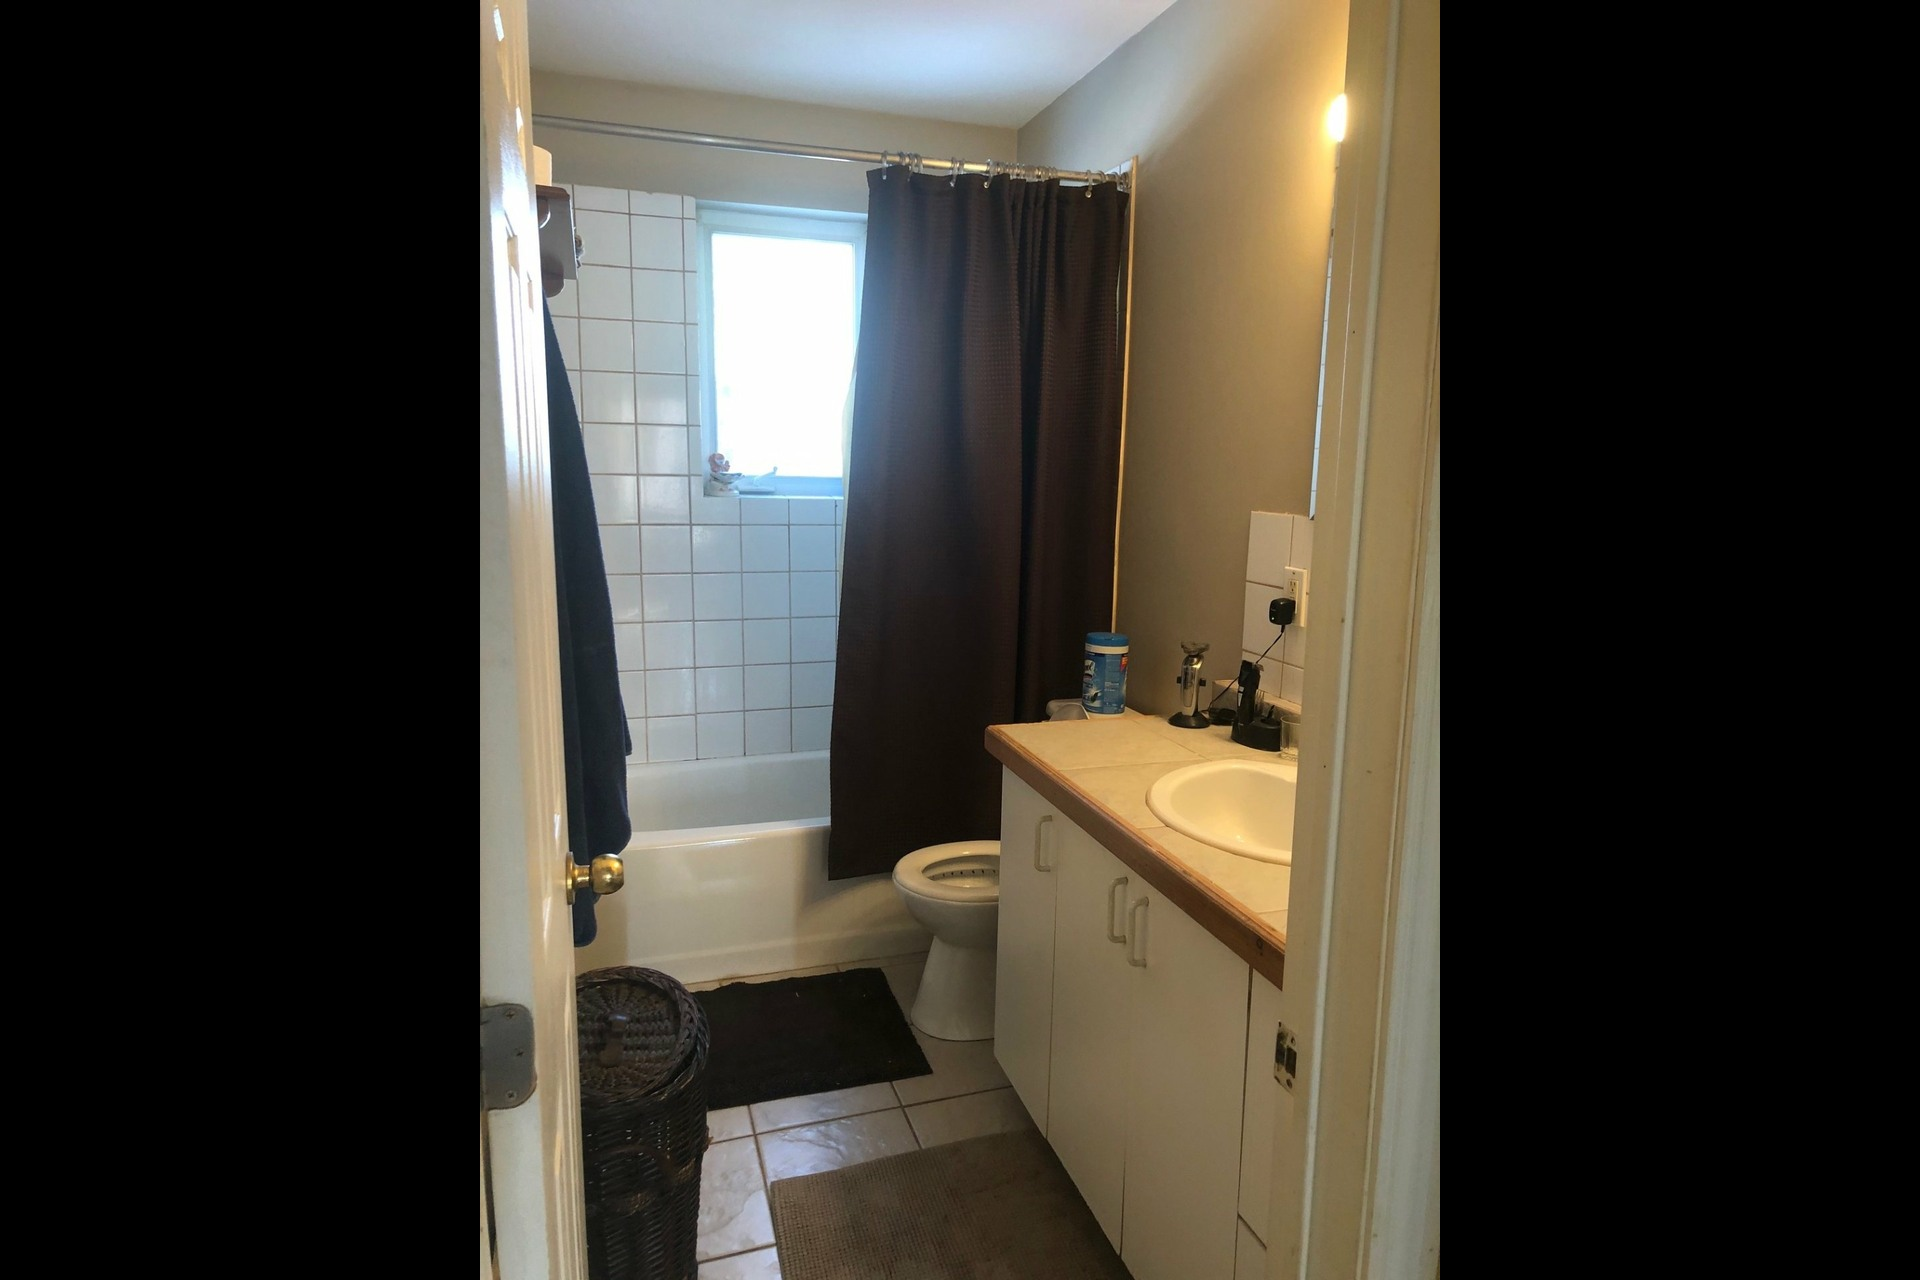 image 8 - House For sale Vaudreuil-Dorion - 6 rooms